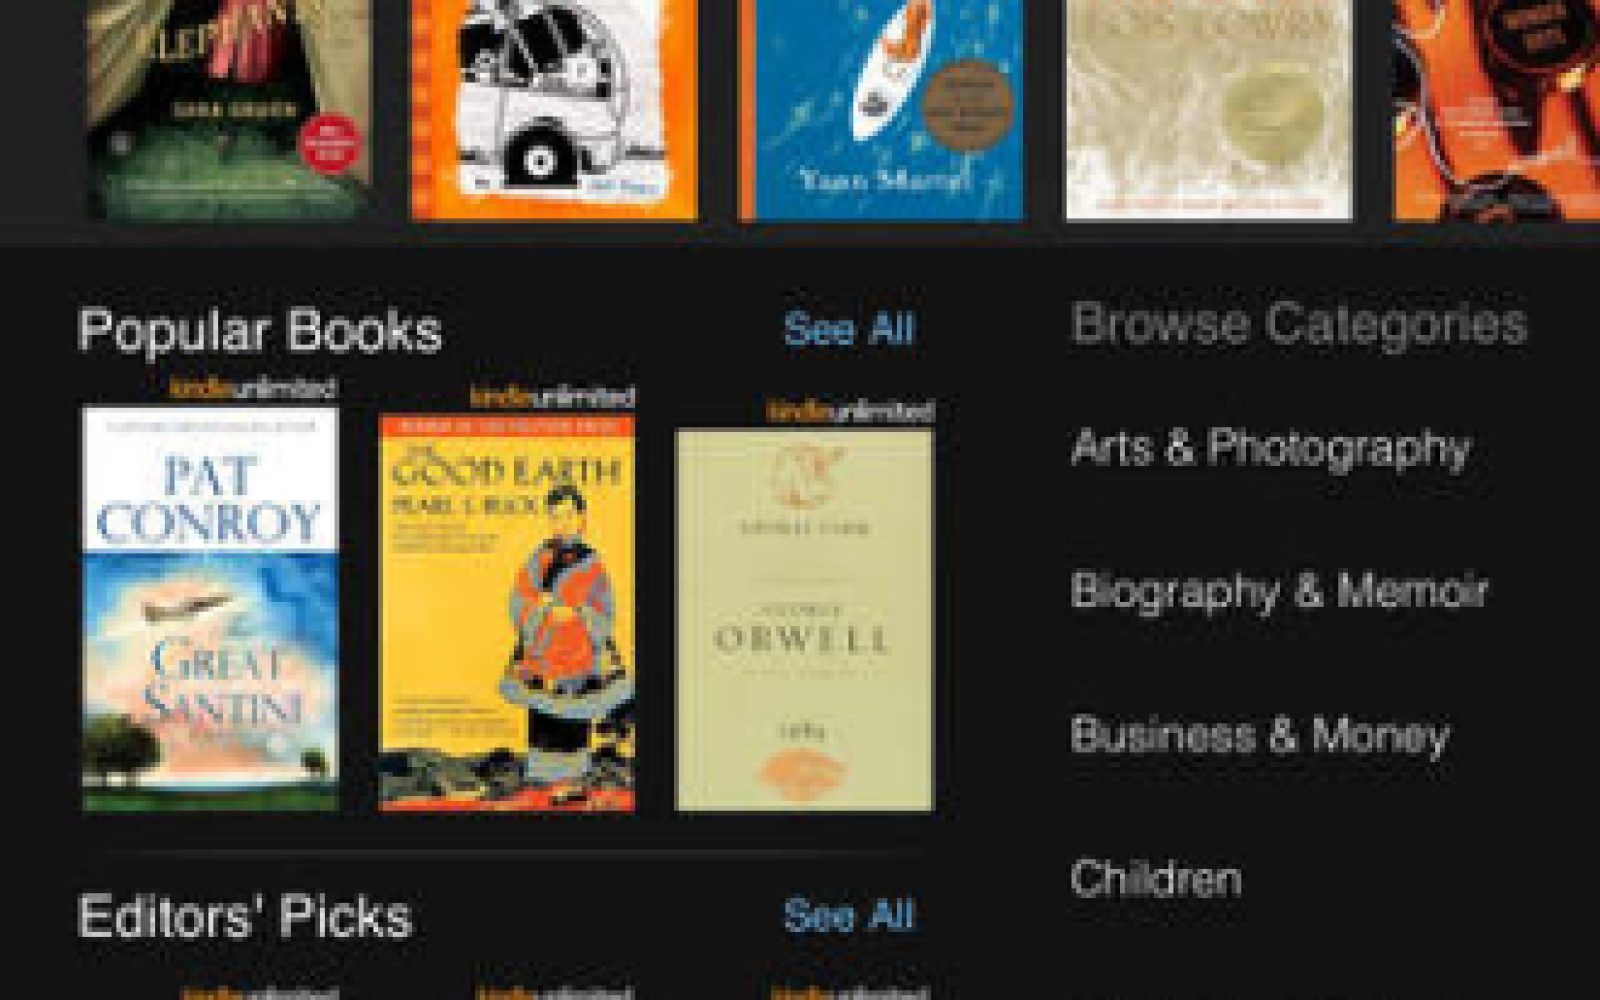 Amazon's Kindle for iOS app updated w/ Goodreads integration